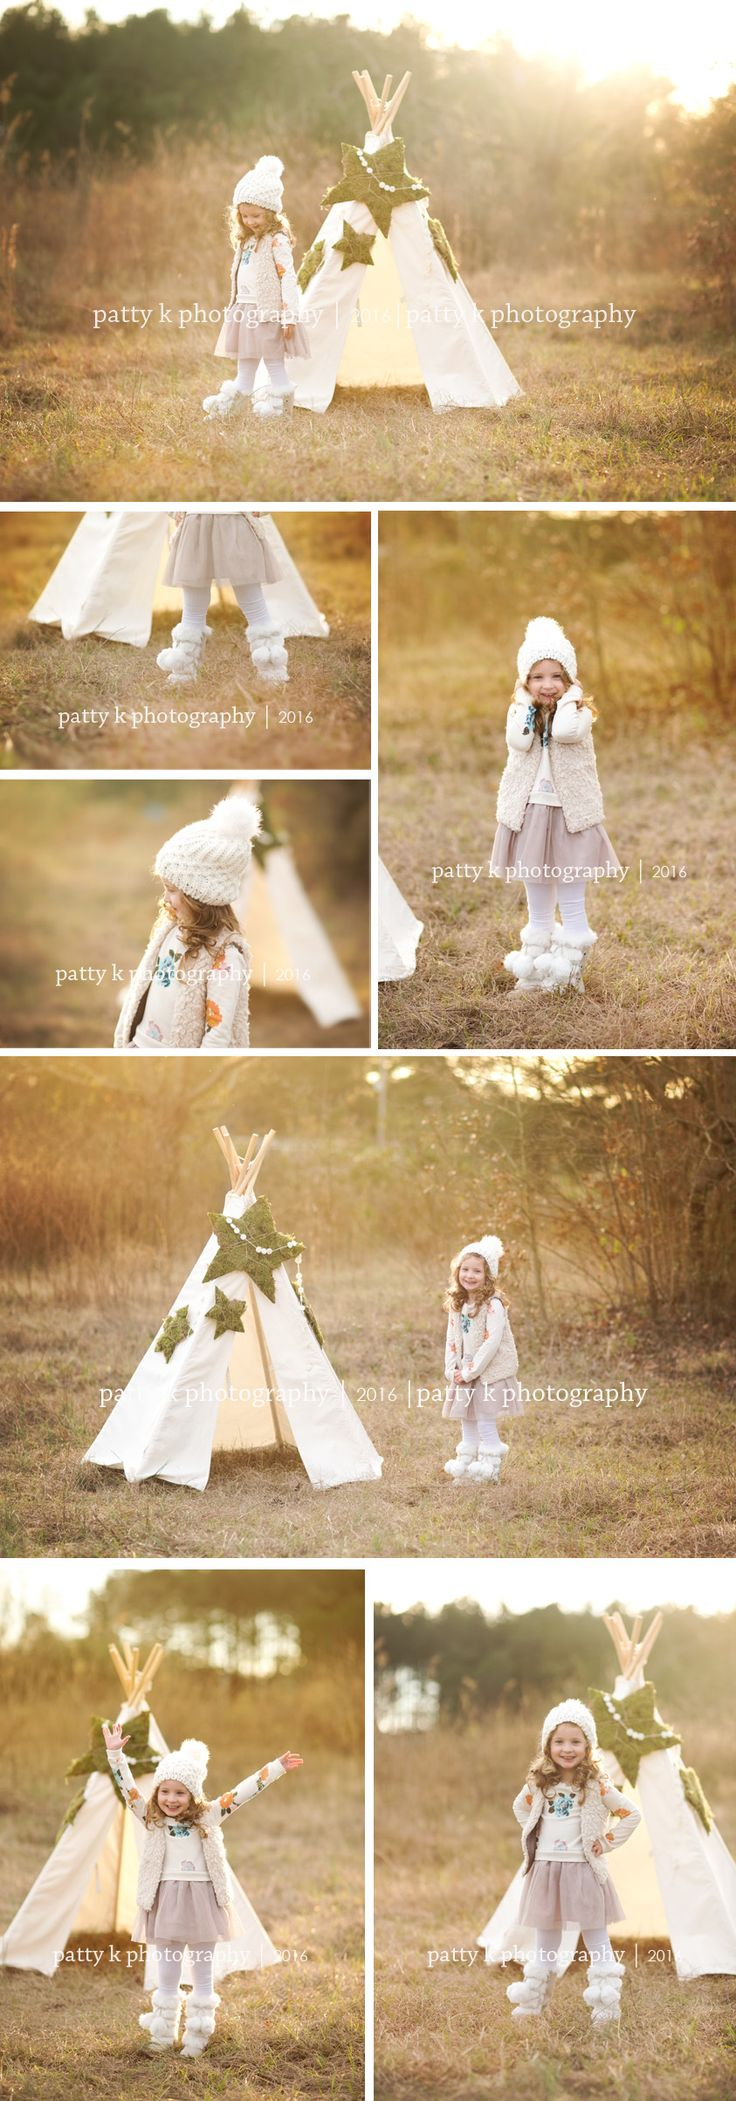 Emma | Imagination Session | Fayetteville, NC Photographer | Patty K Photography